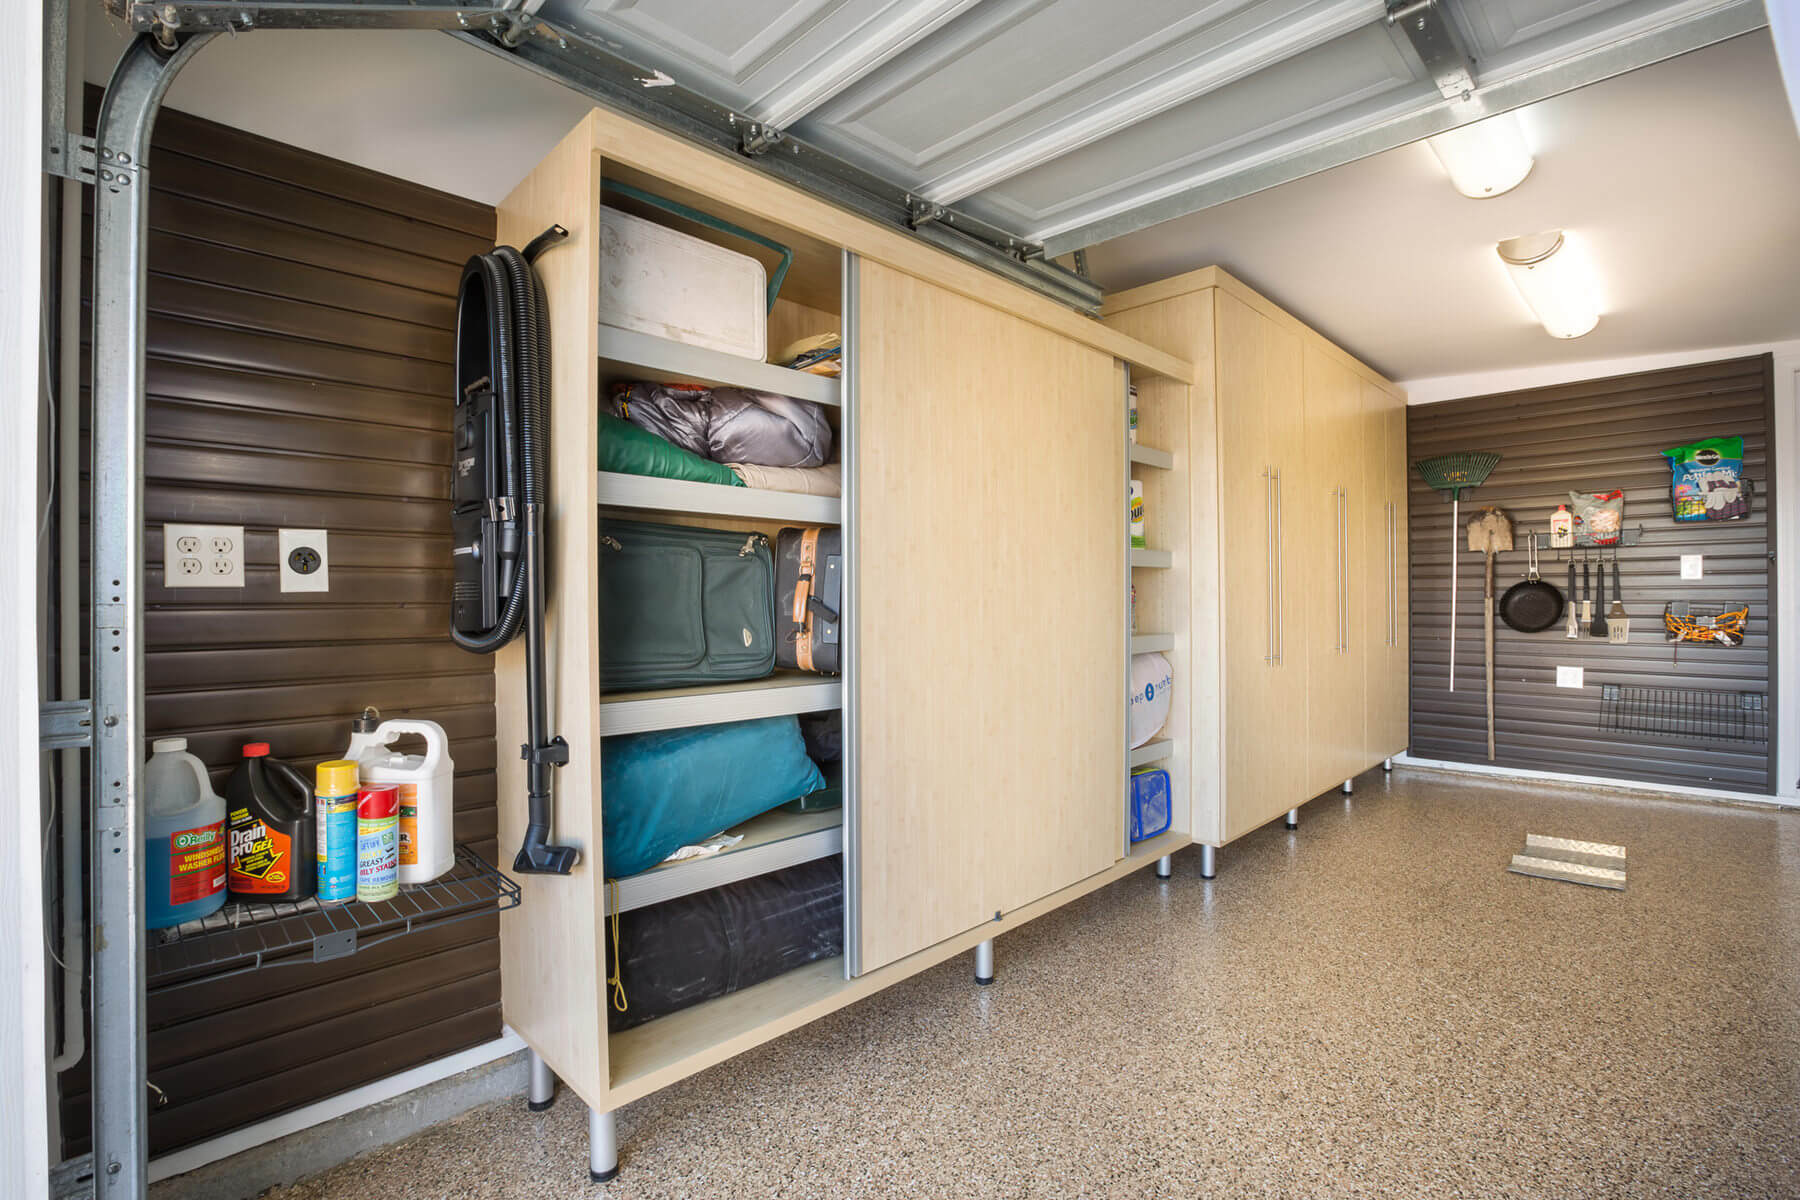 On another side of the garage is a large-sized rectangular maple melamine cabinet with full sliding doors allowing for easy access to belongings whenever the car is parked inside.